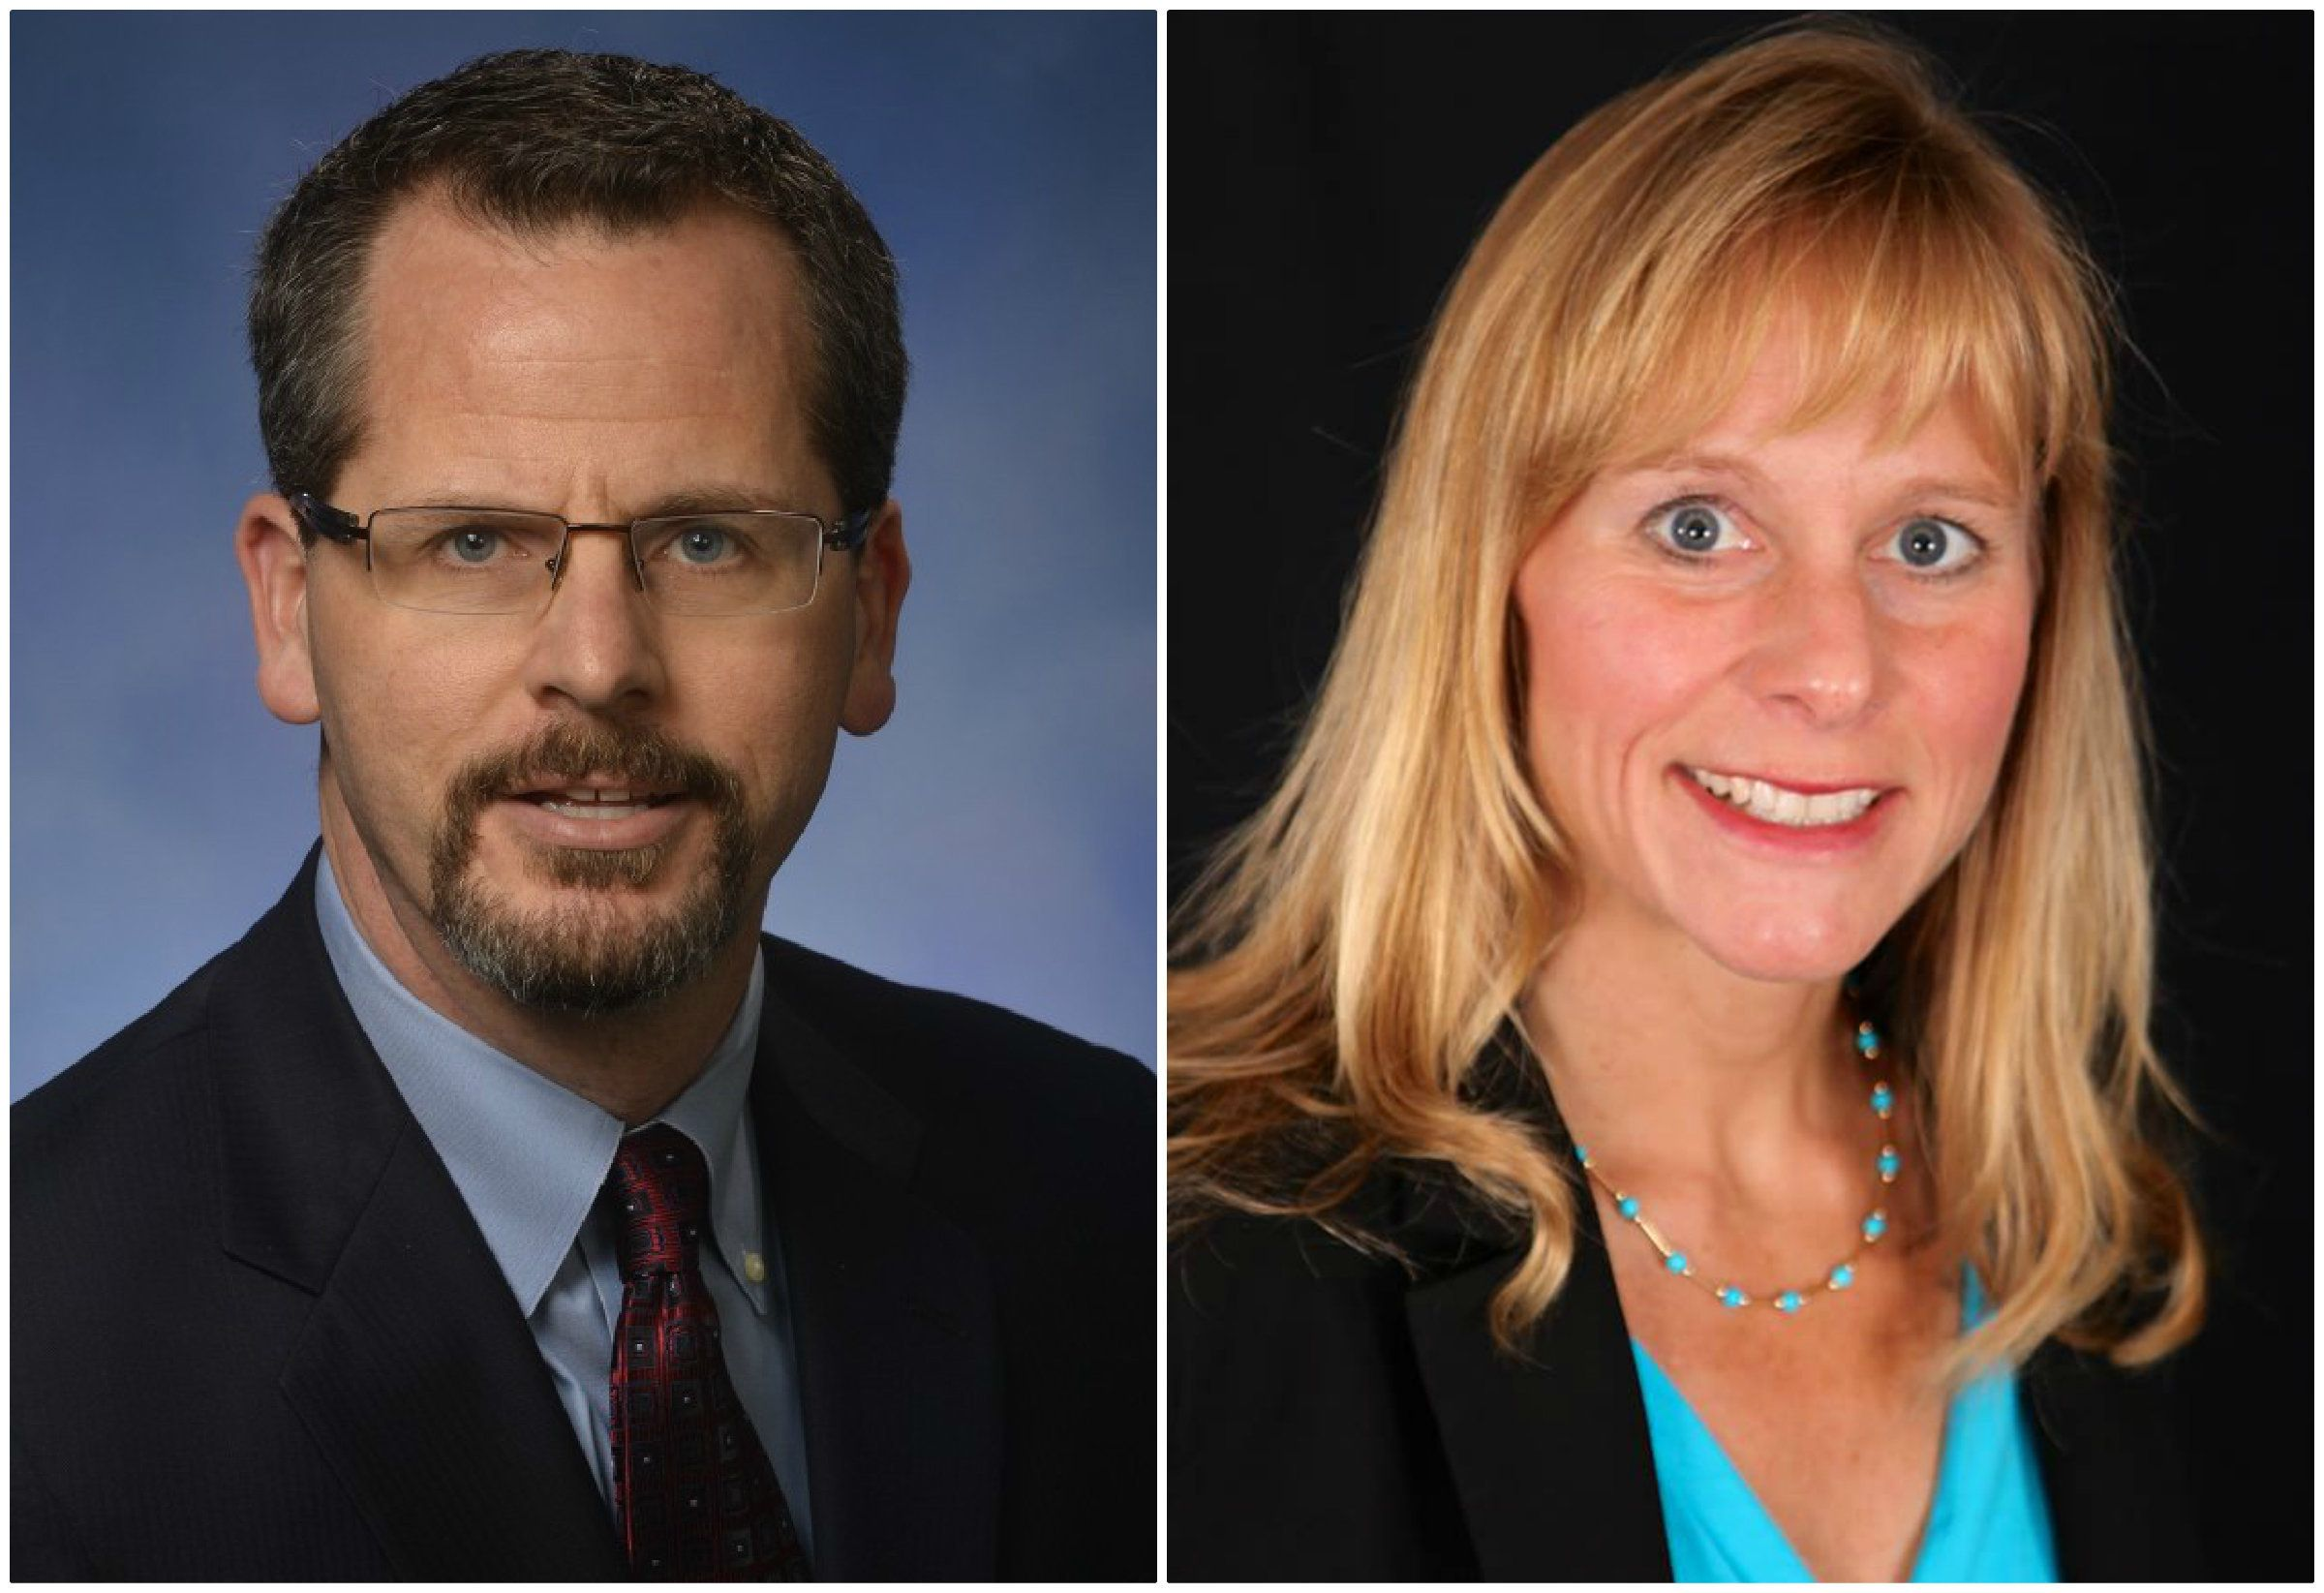 Rep. Todd Courser (R-Mich.) and Rep. Cindy Gamrat (R-Mich.) were allegedly having an affair that Courser tried to cover up.